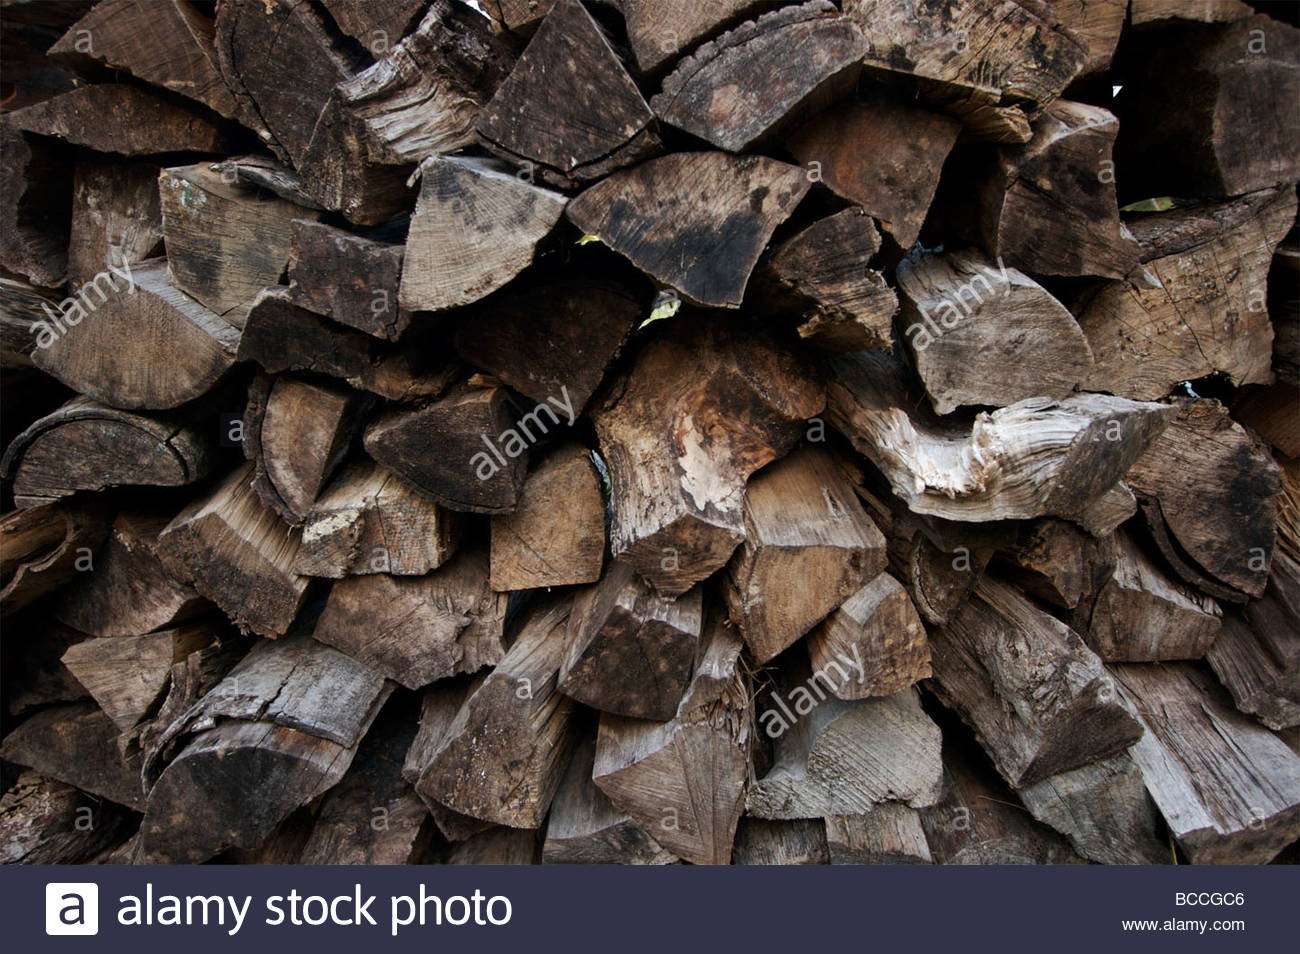 Stacked firewood. - Stock Image